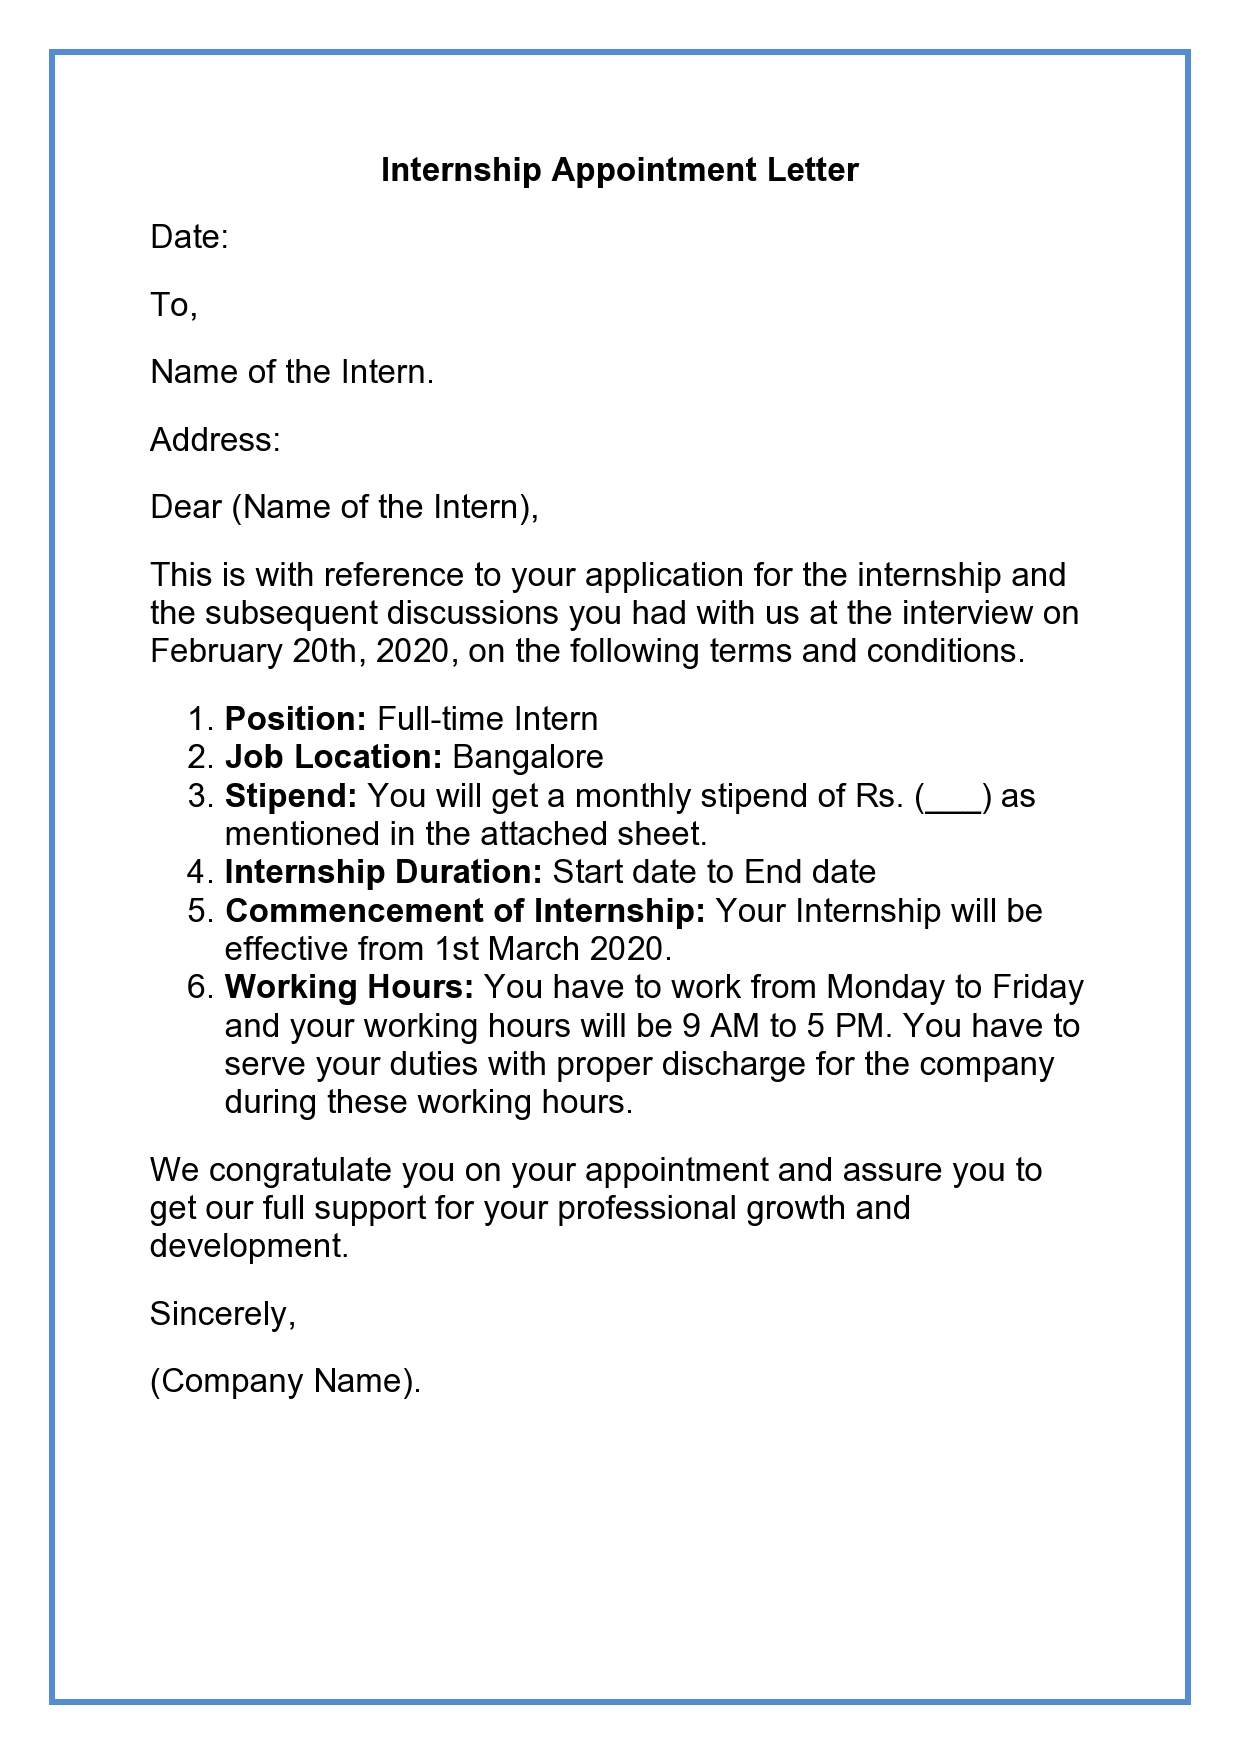 Internship Appointment Letter